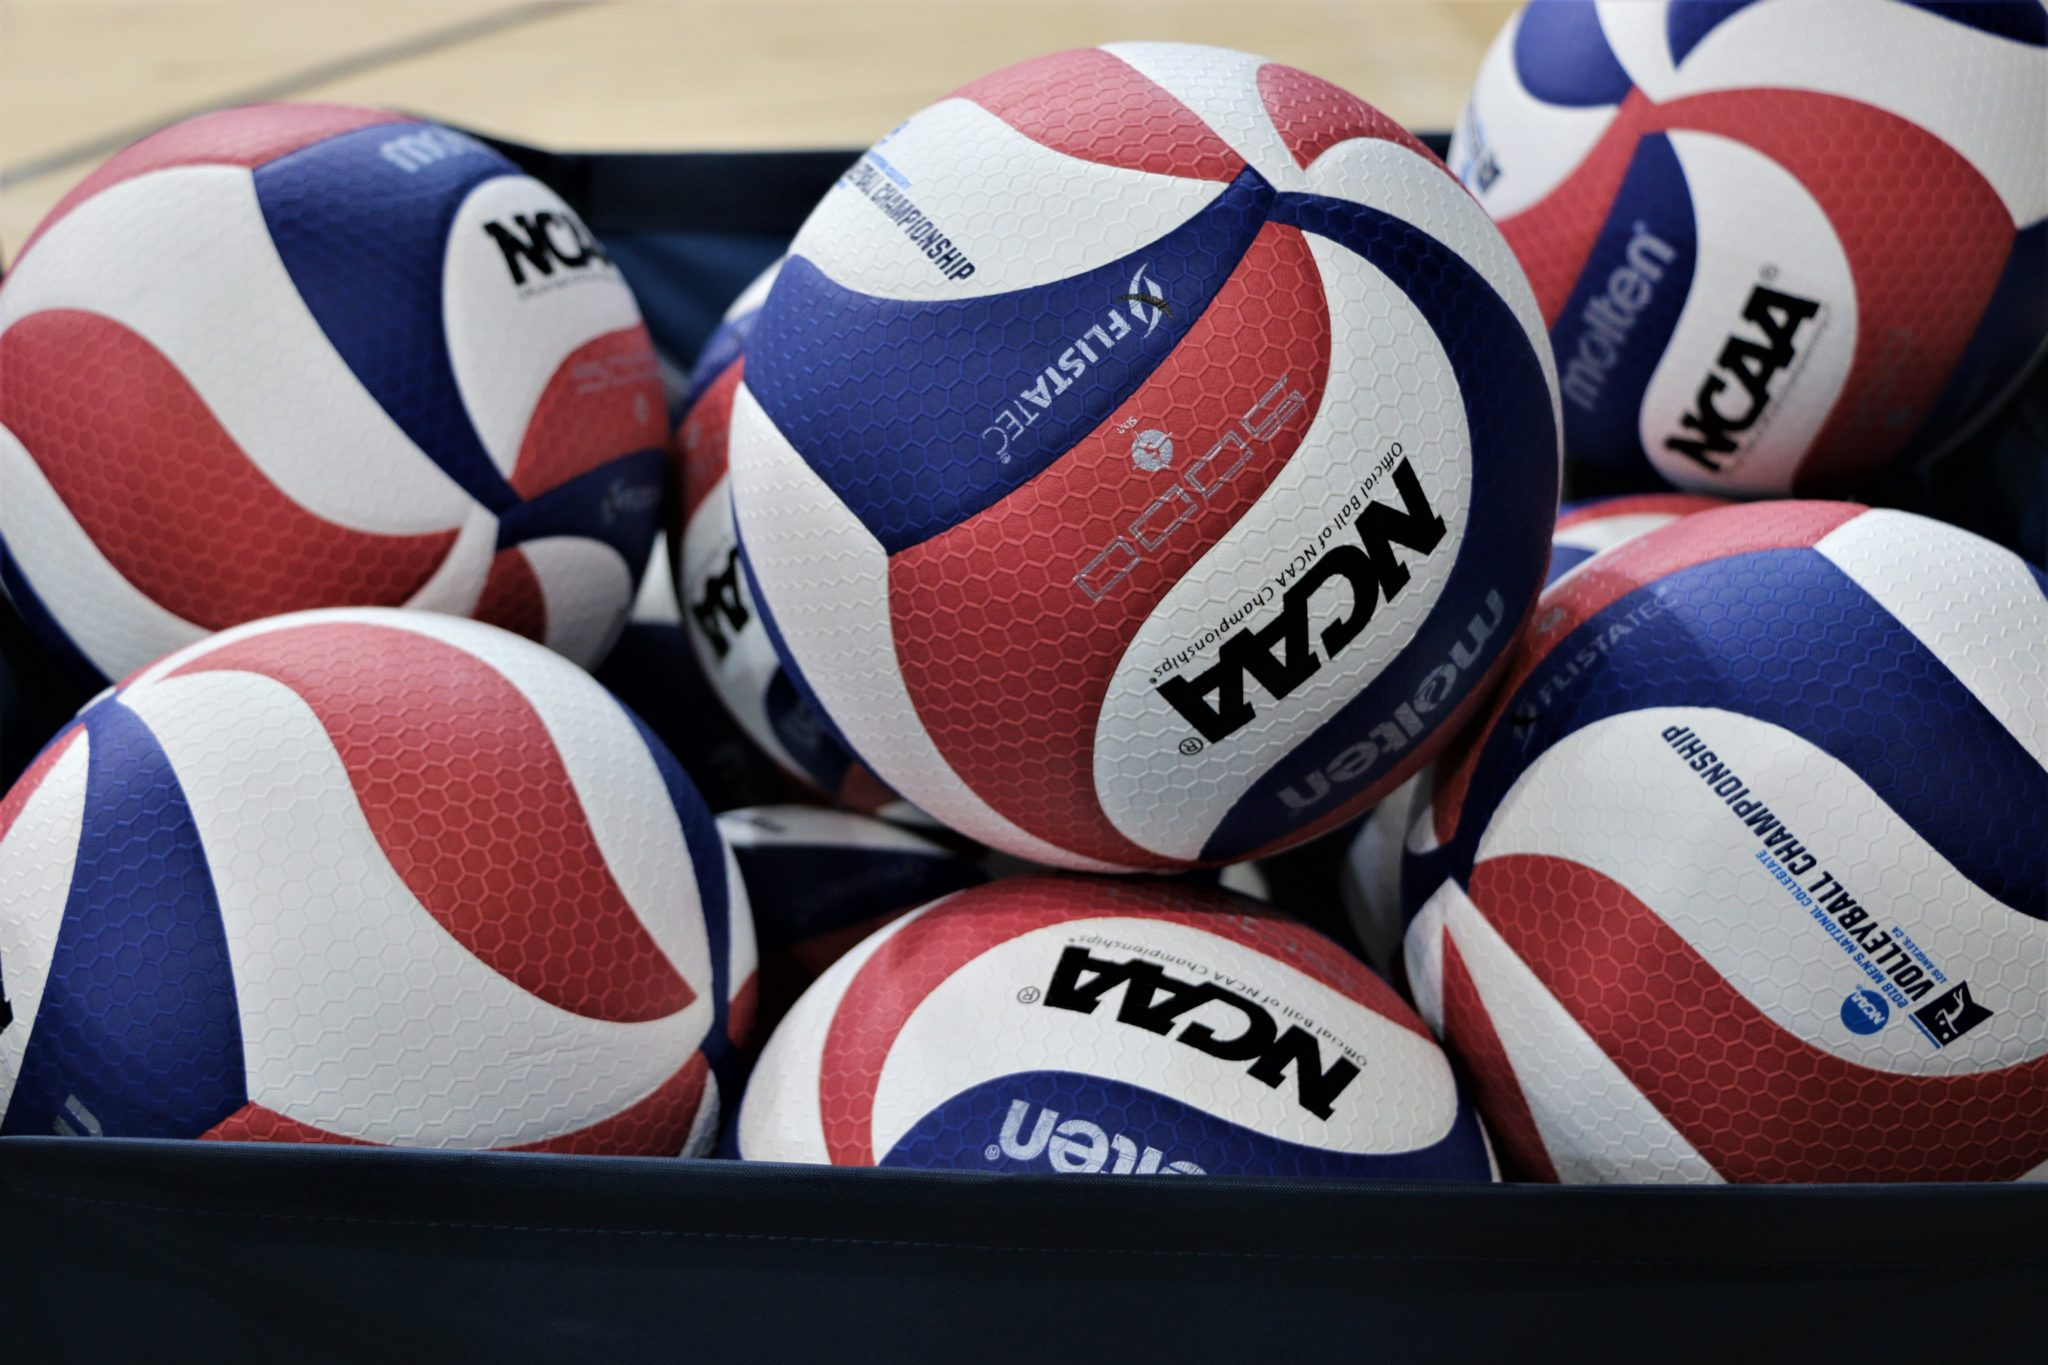 88 Women's 27 Beach 6 Men's Programs Earn NCAA APR Award